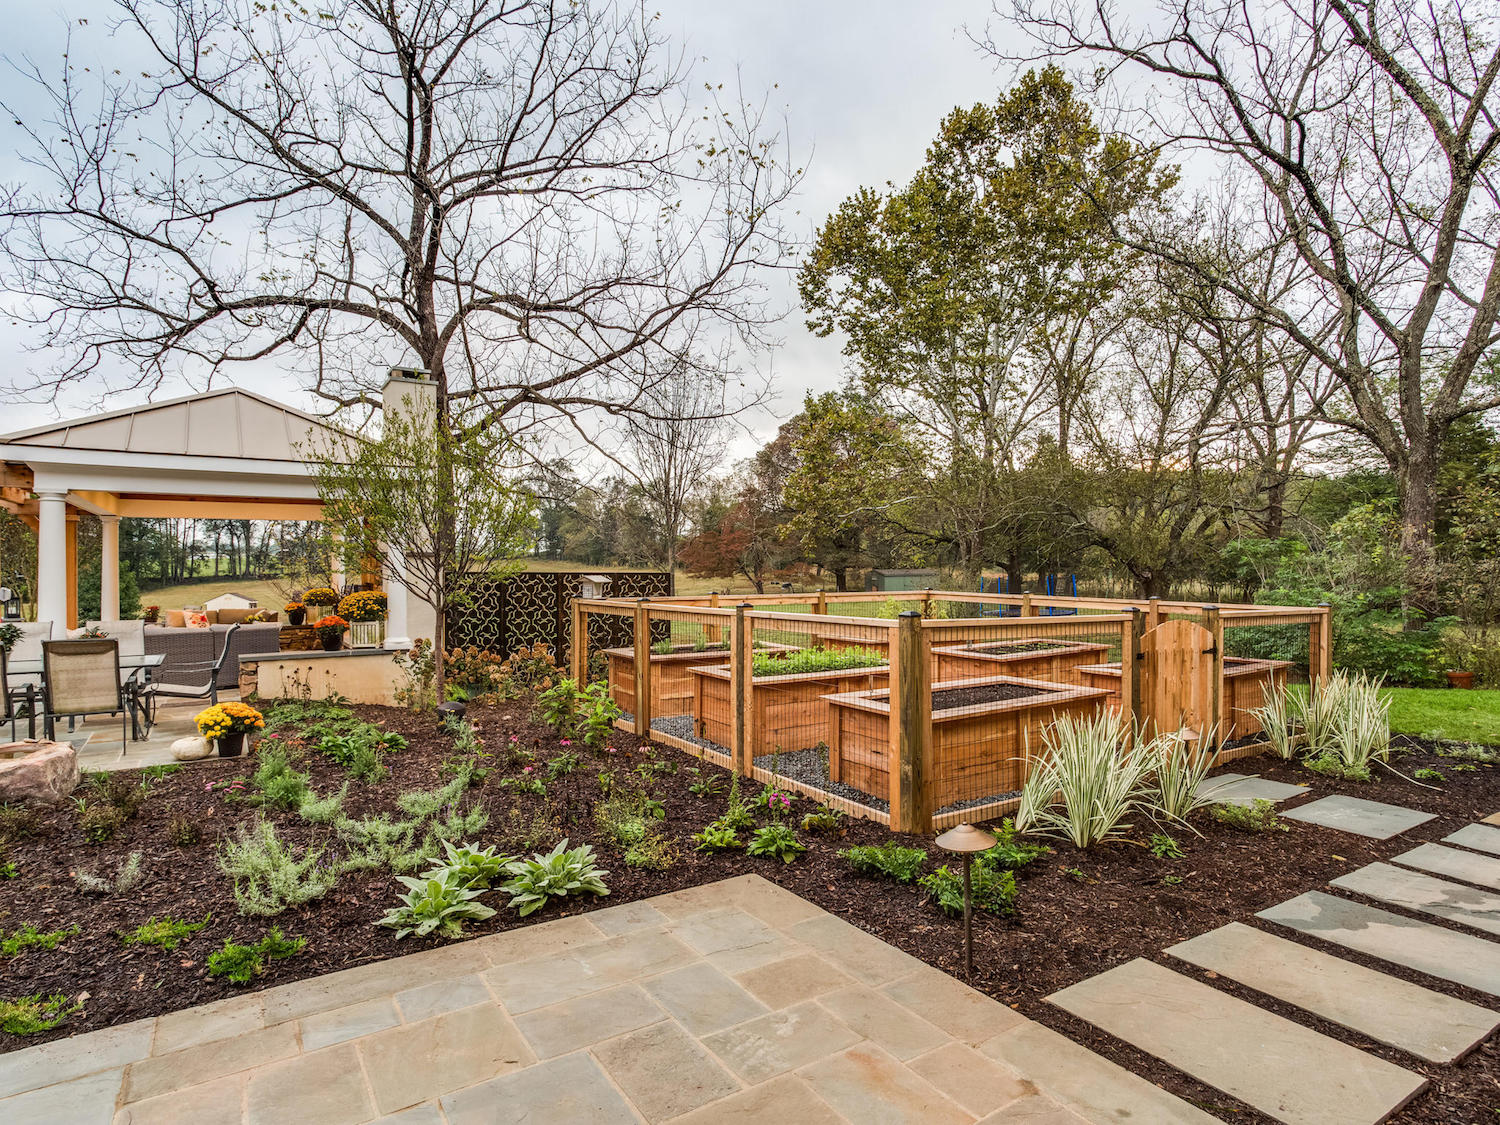 landscape design with multiple plants and a garden in Warrenton, VA